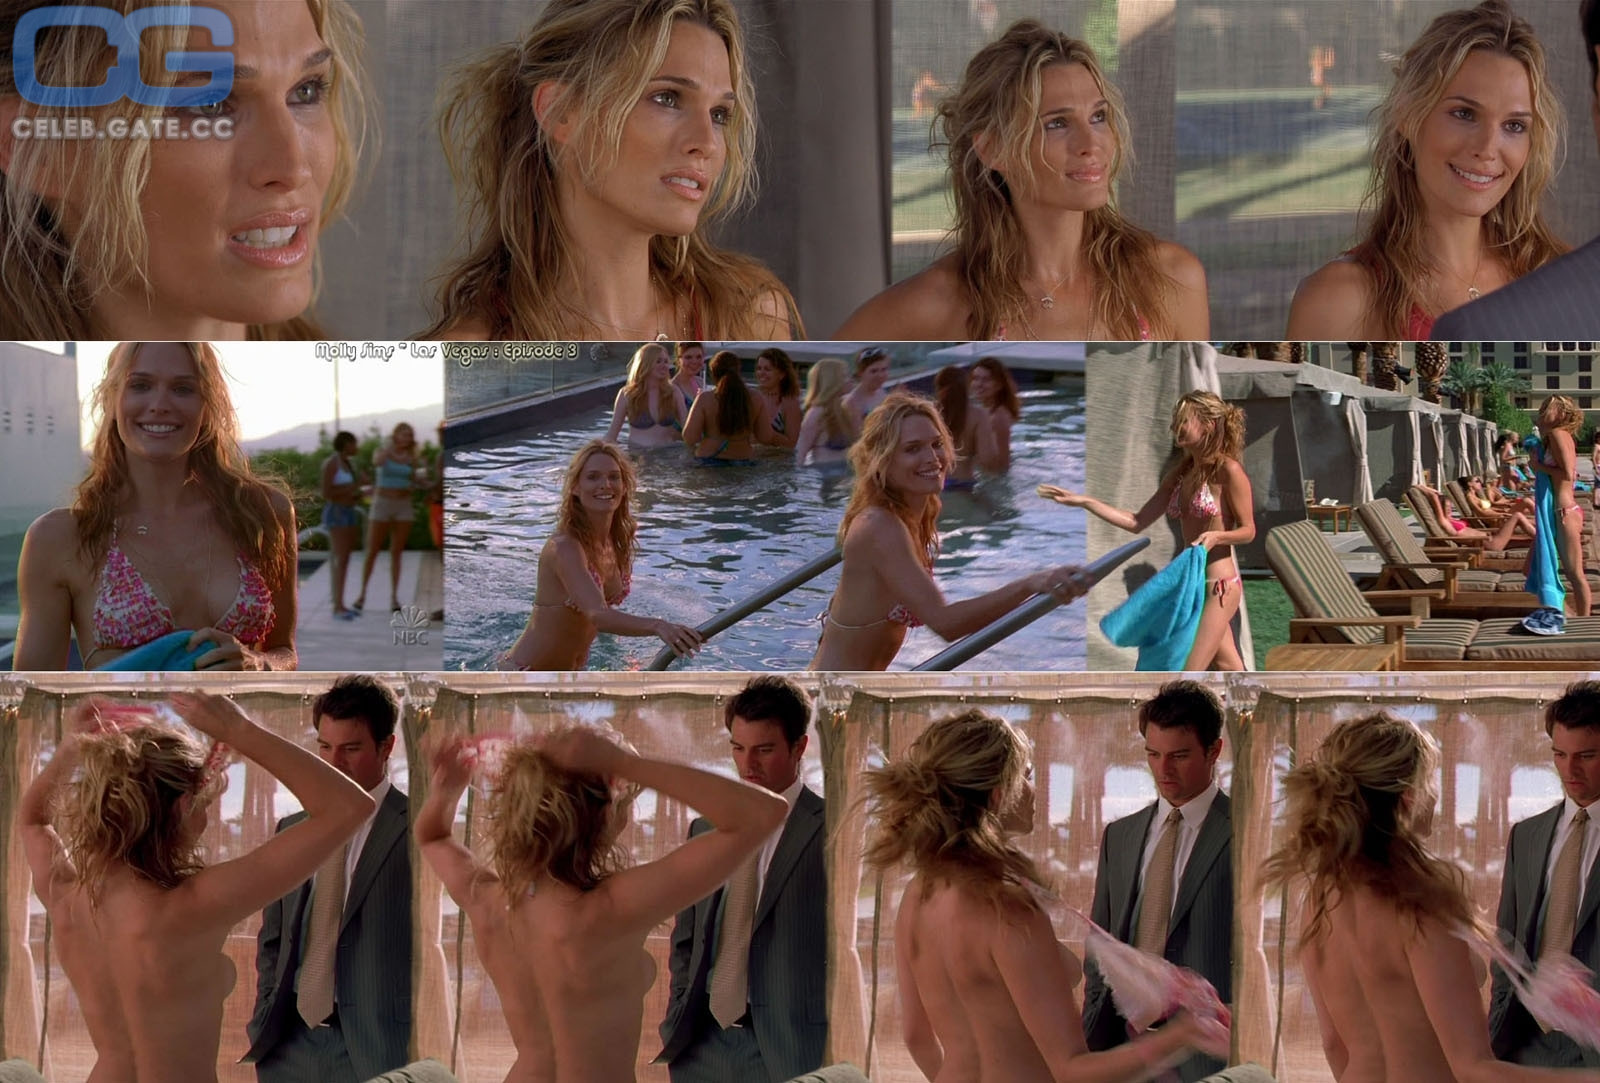 Molly Sims / Nude foto 2